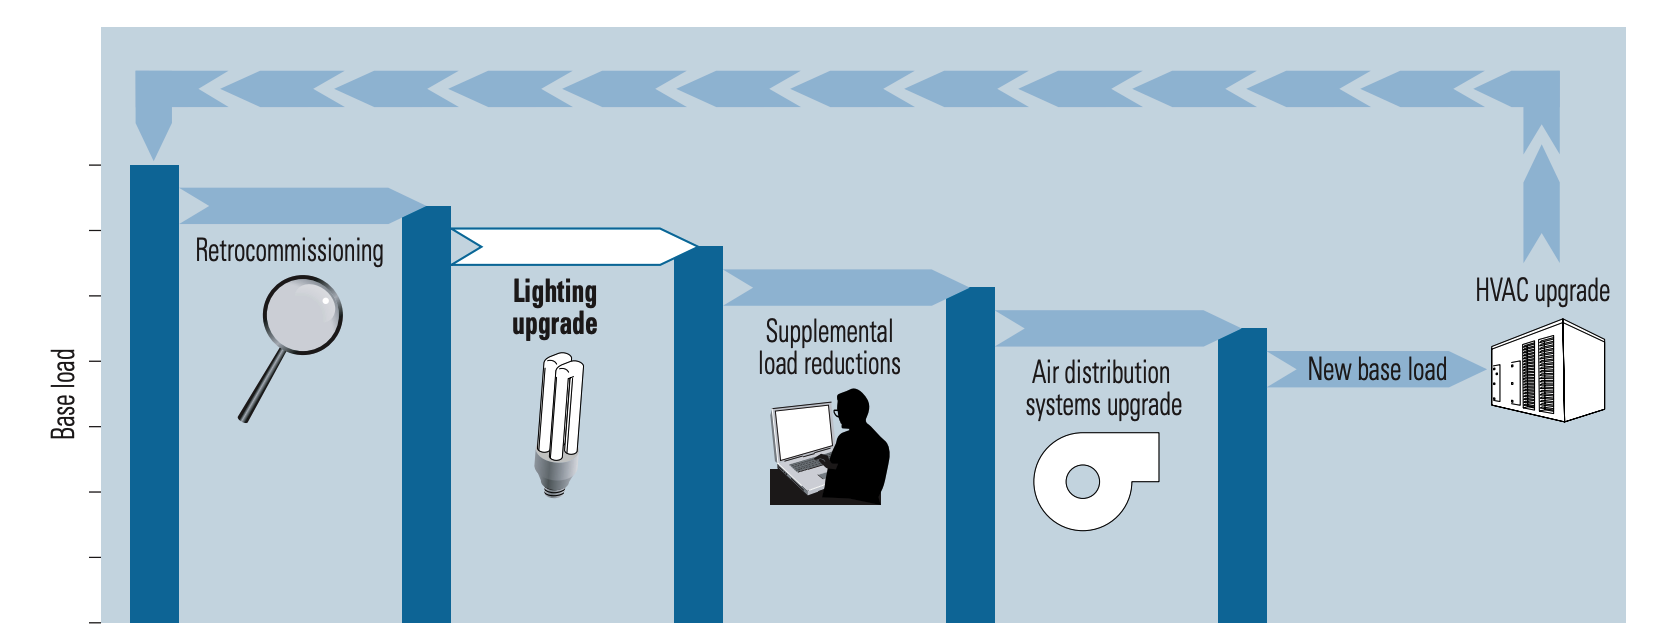 EPA stages of integrated lighting upgrade approach